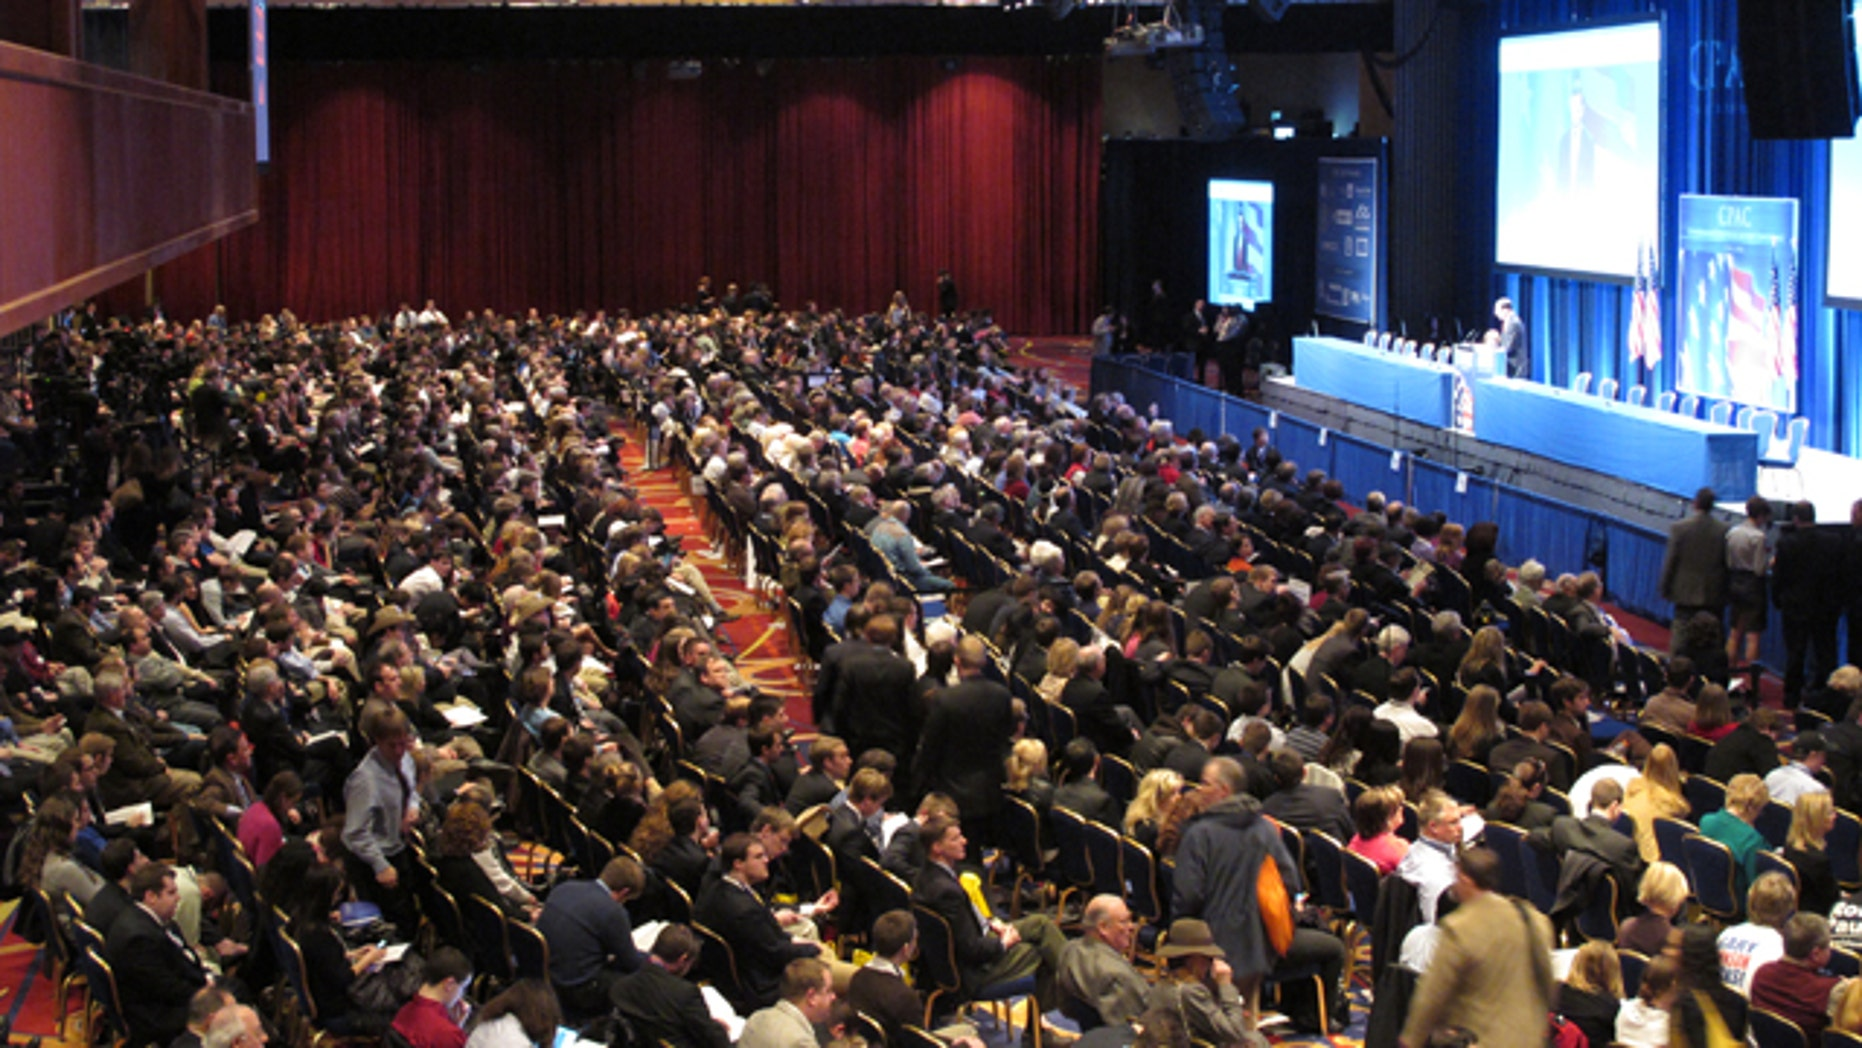 Shown here is the audience at the Conservative Political Action Conference in Washington on Feb. 11.